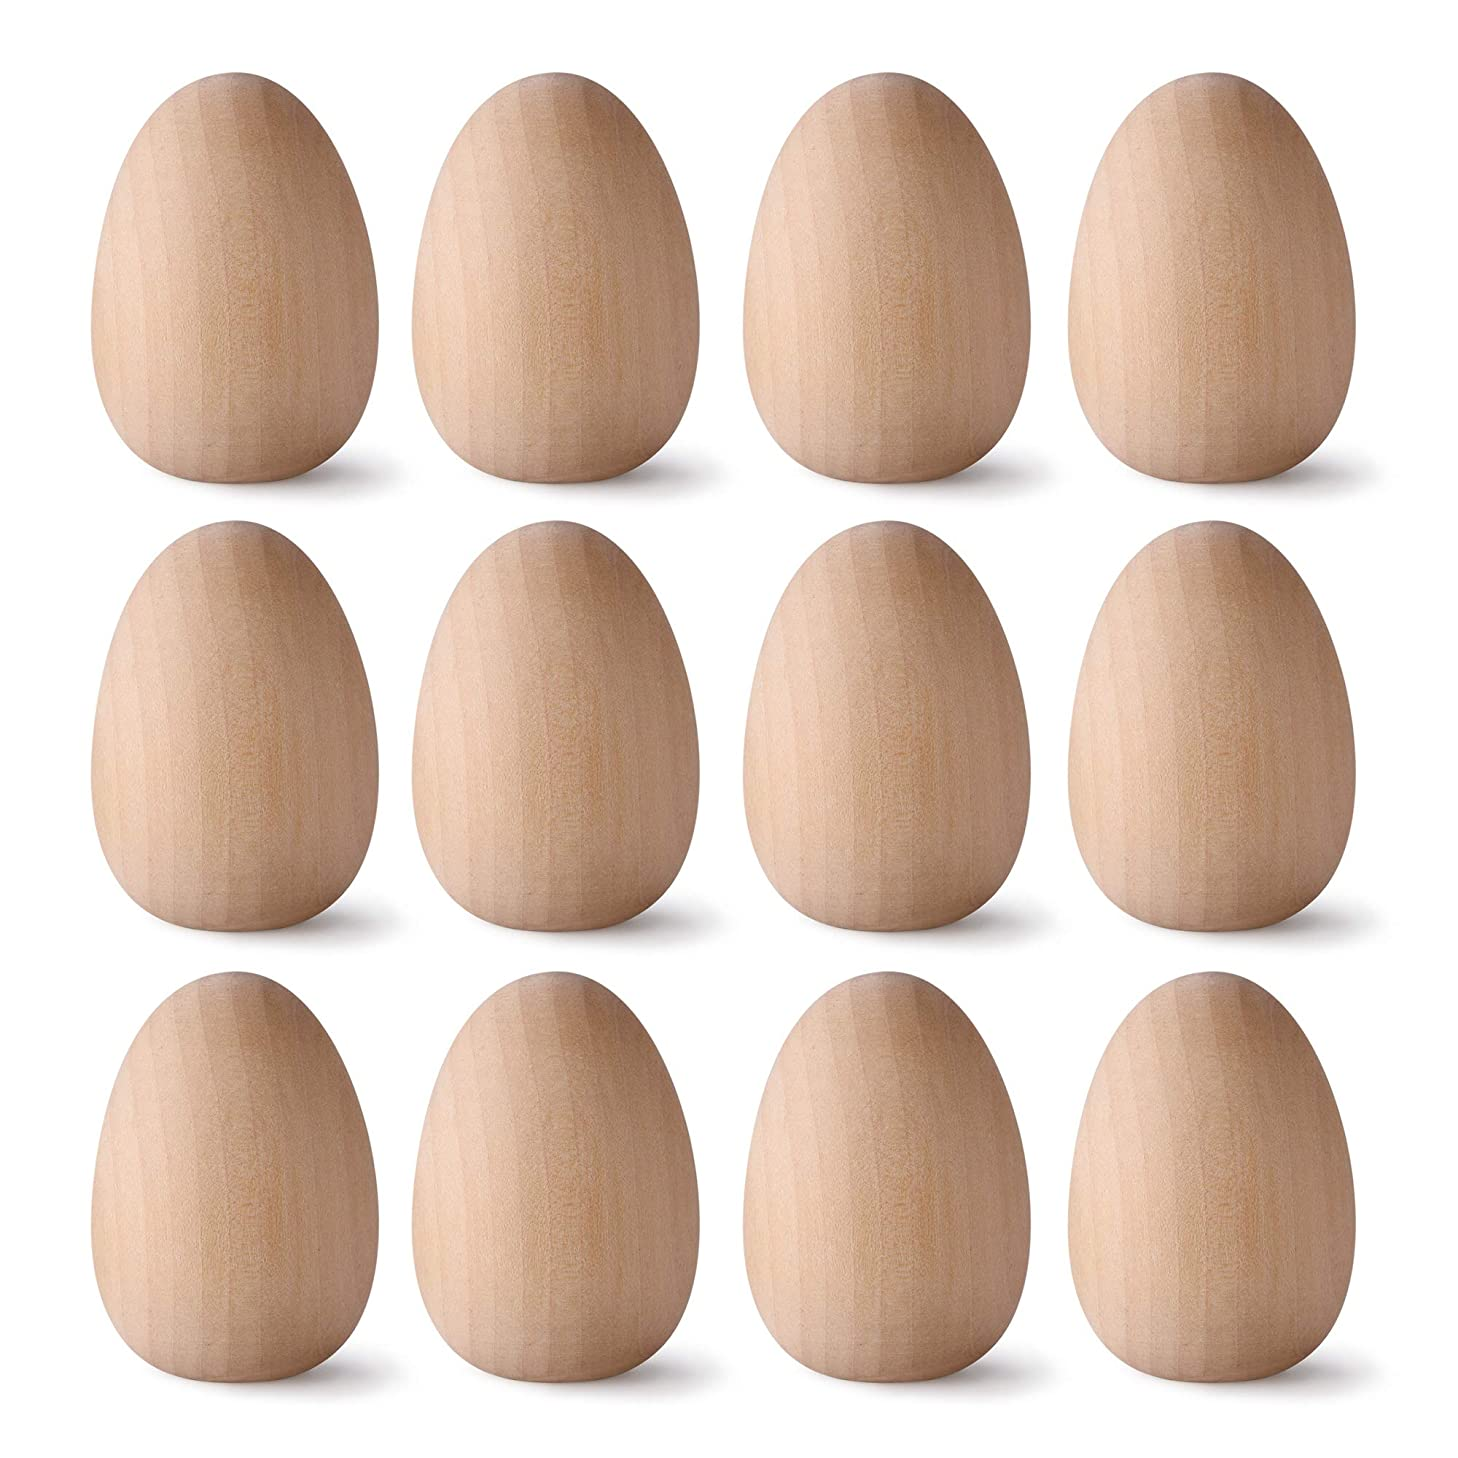 CM Pack of 12 Unfinished Wooden Eggs Easter Eggs Decoration for Painting DIY Crafts